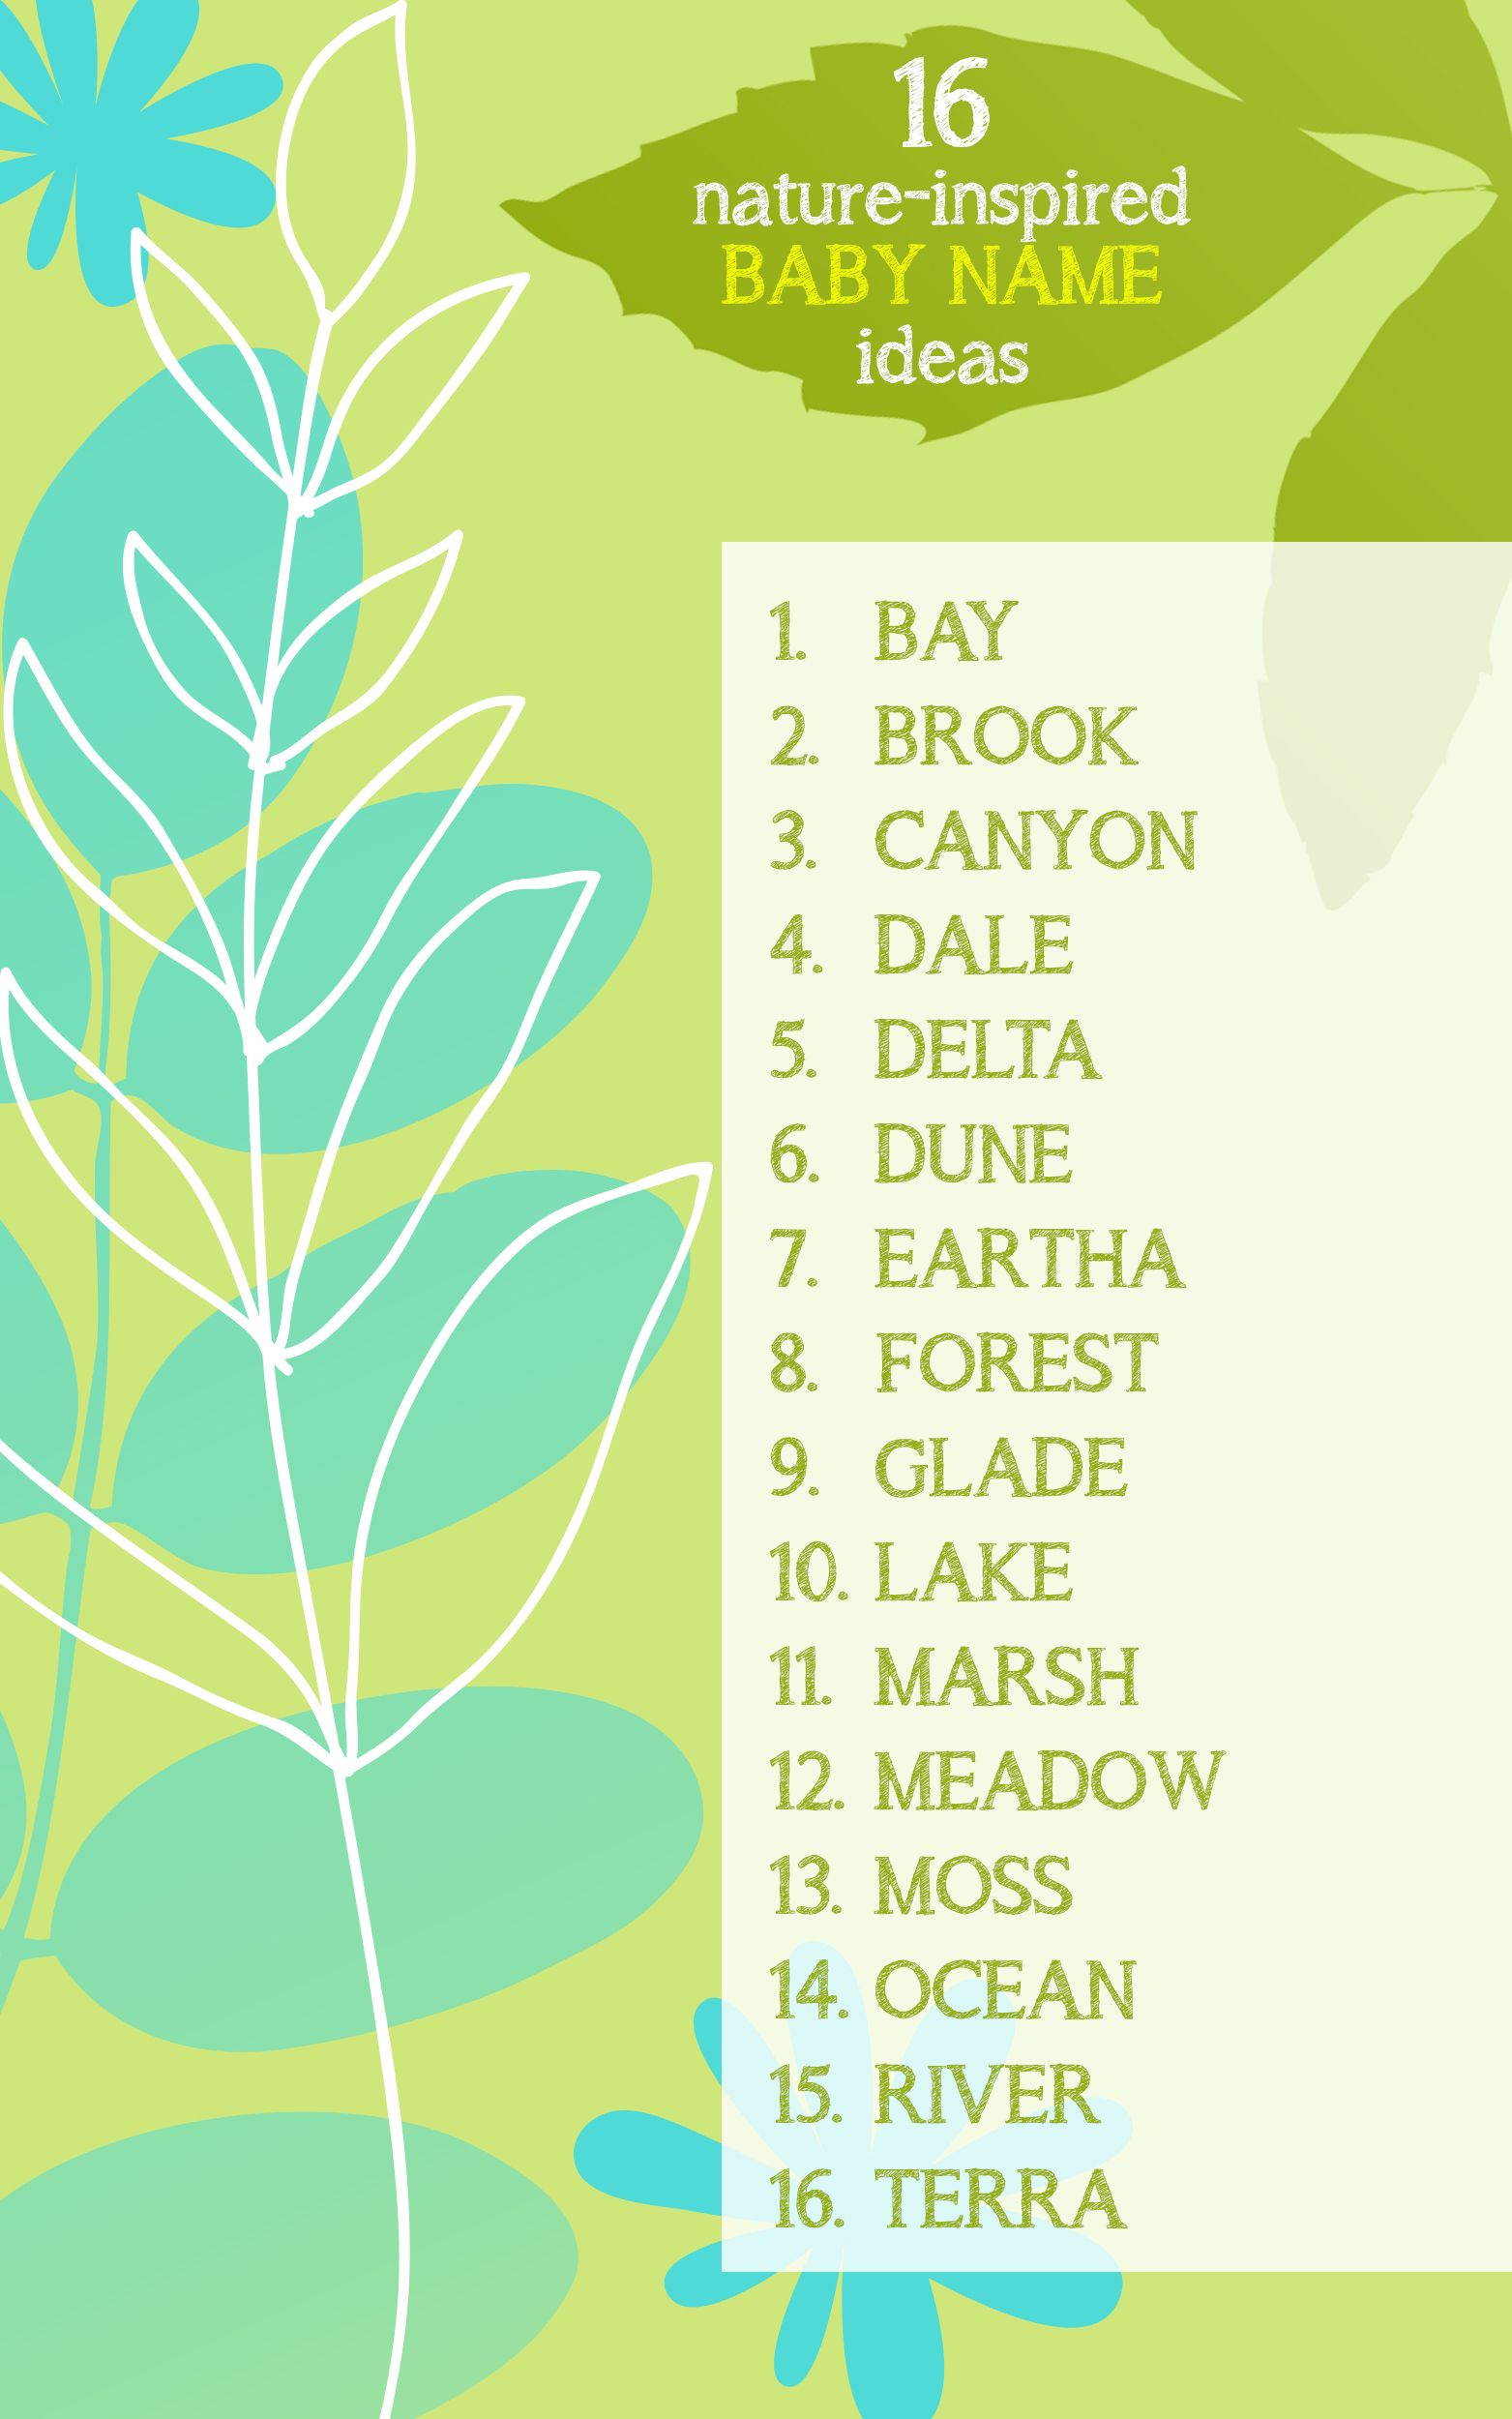 16 nature inspired baby names for Earth Day would you use one